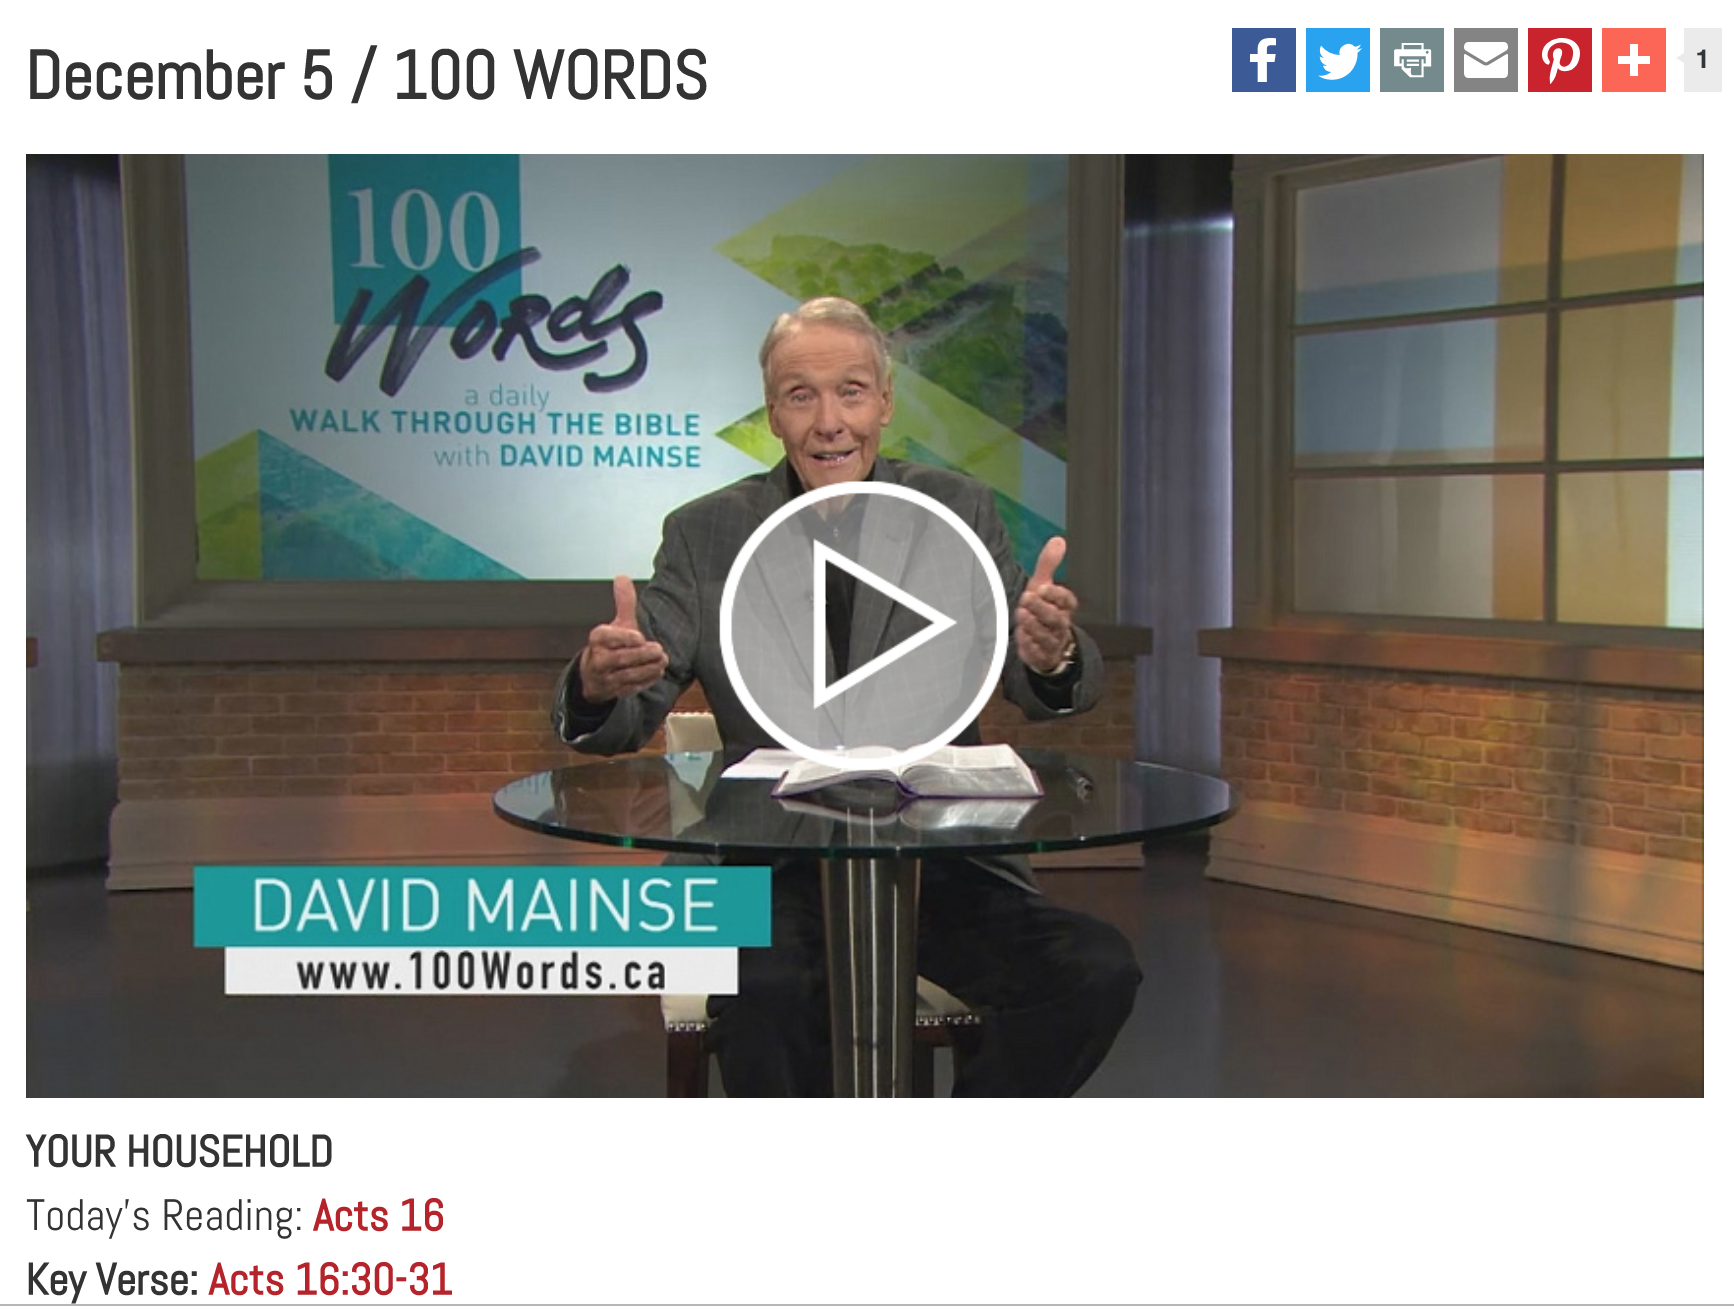 david mainse 100 words blog